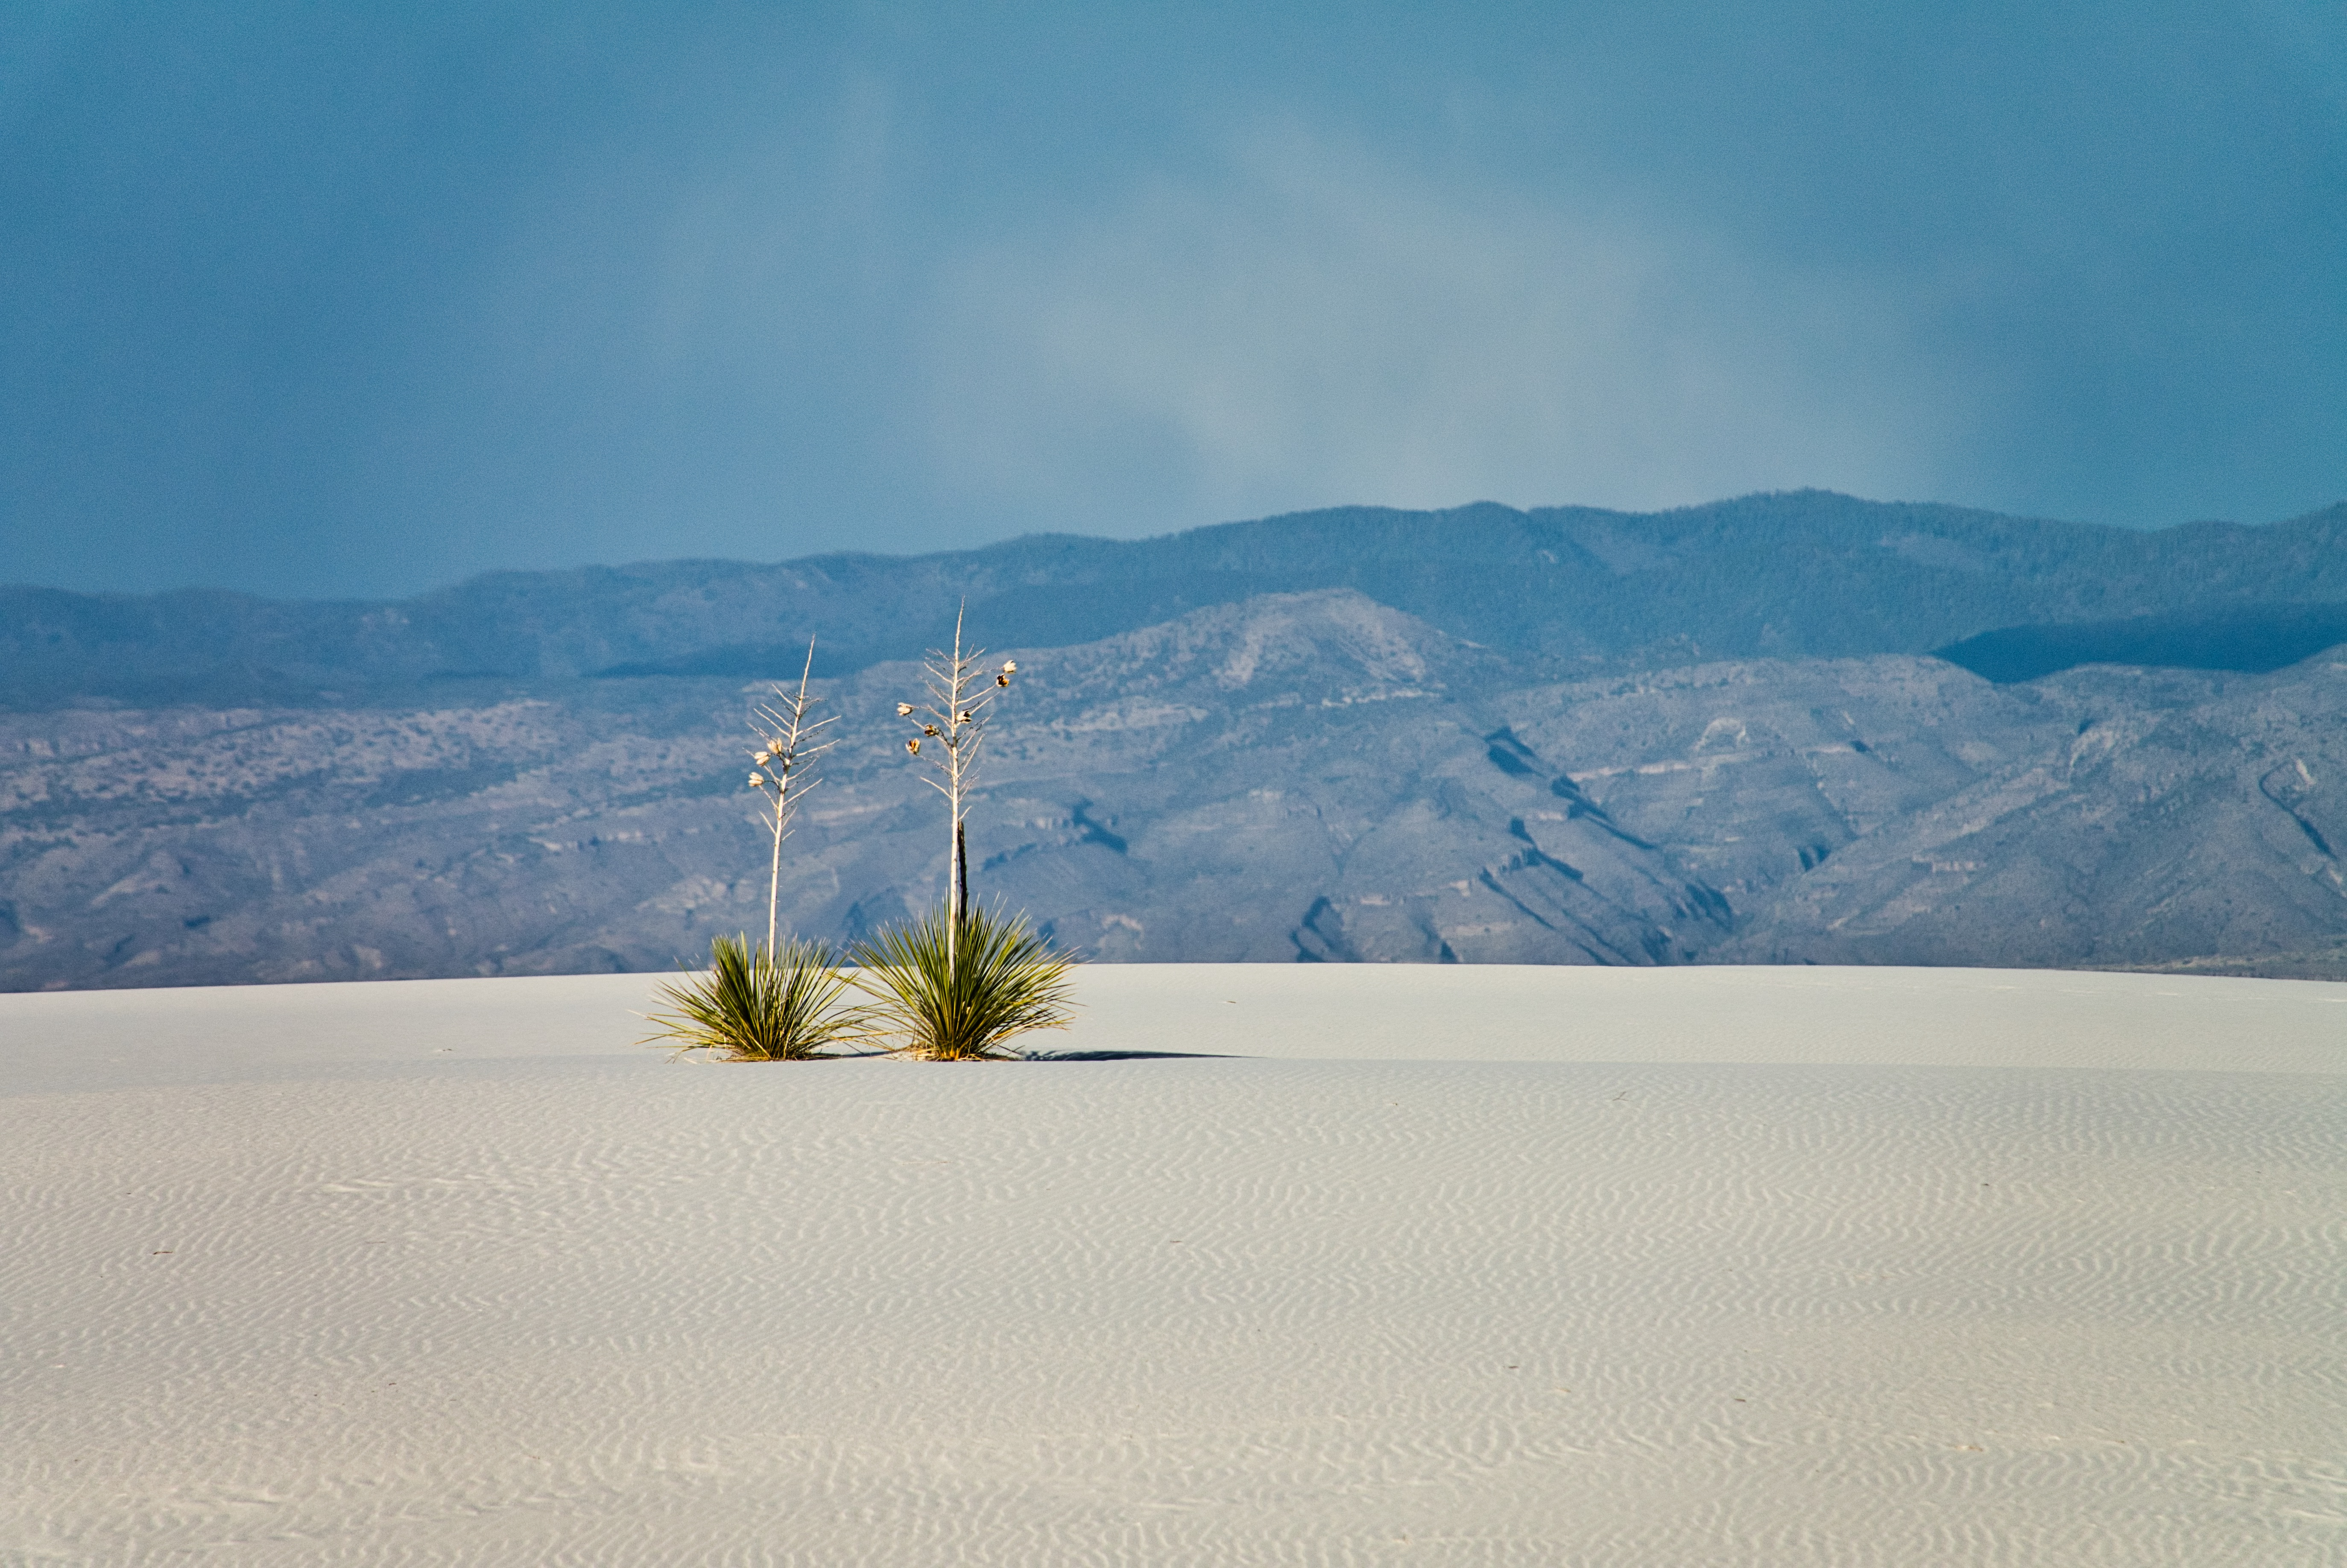 Lonely Yucca plants